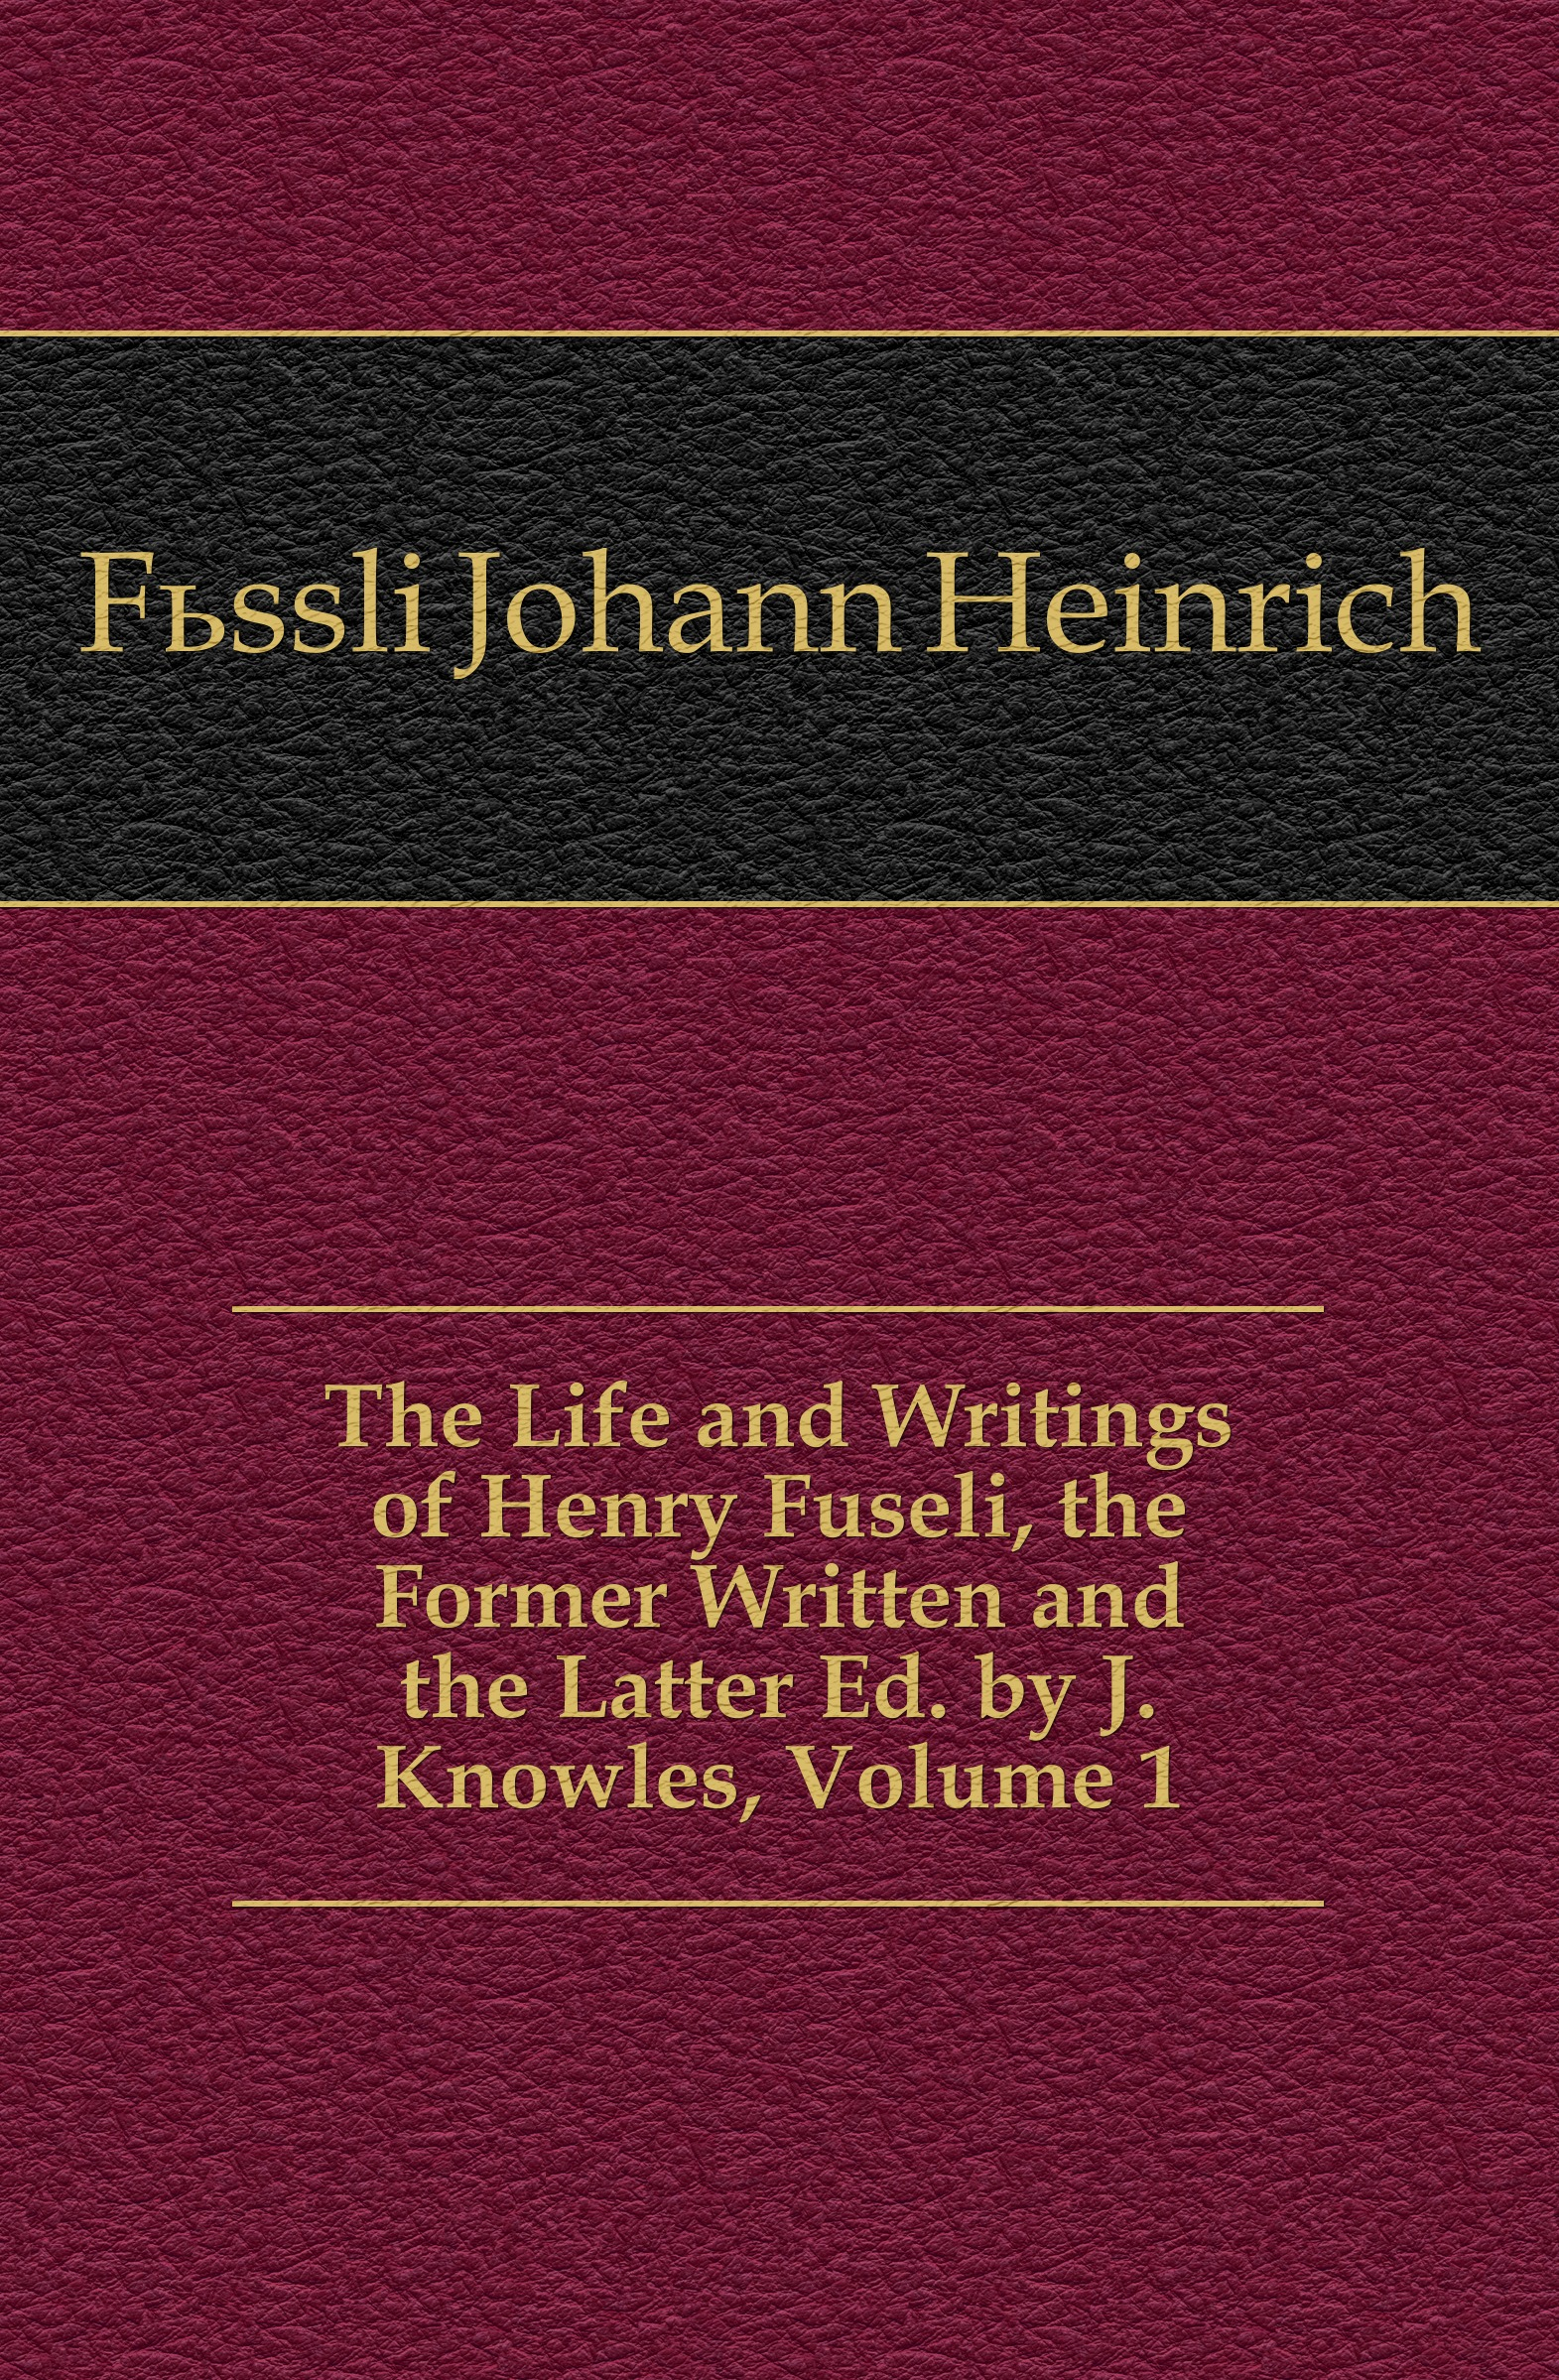 Füssli Johann Heinrich The Life and Writings of Henry Fuseli, the Former Written and the Latter Ed. by J. Knowles, Volume 1 fuseli henry the life and writings of henry fuseli volume 3 of 3